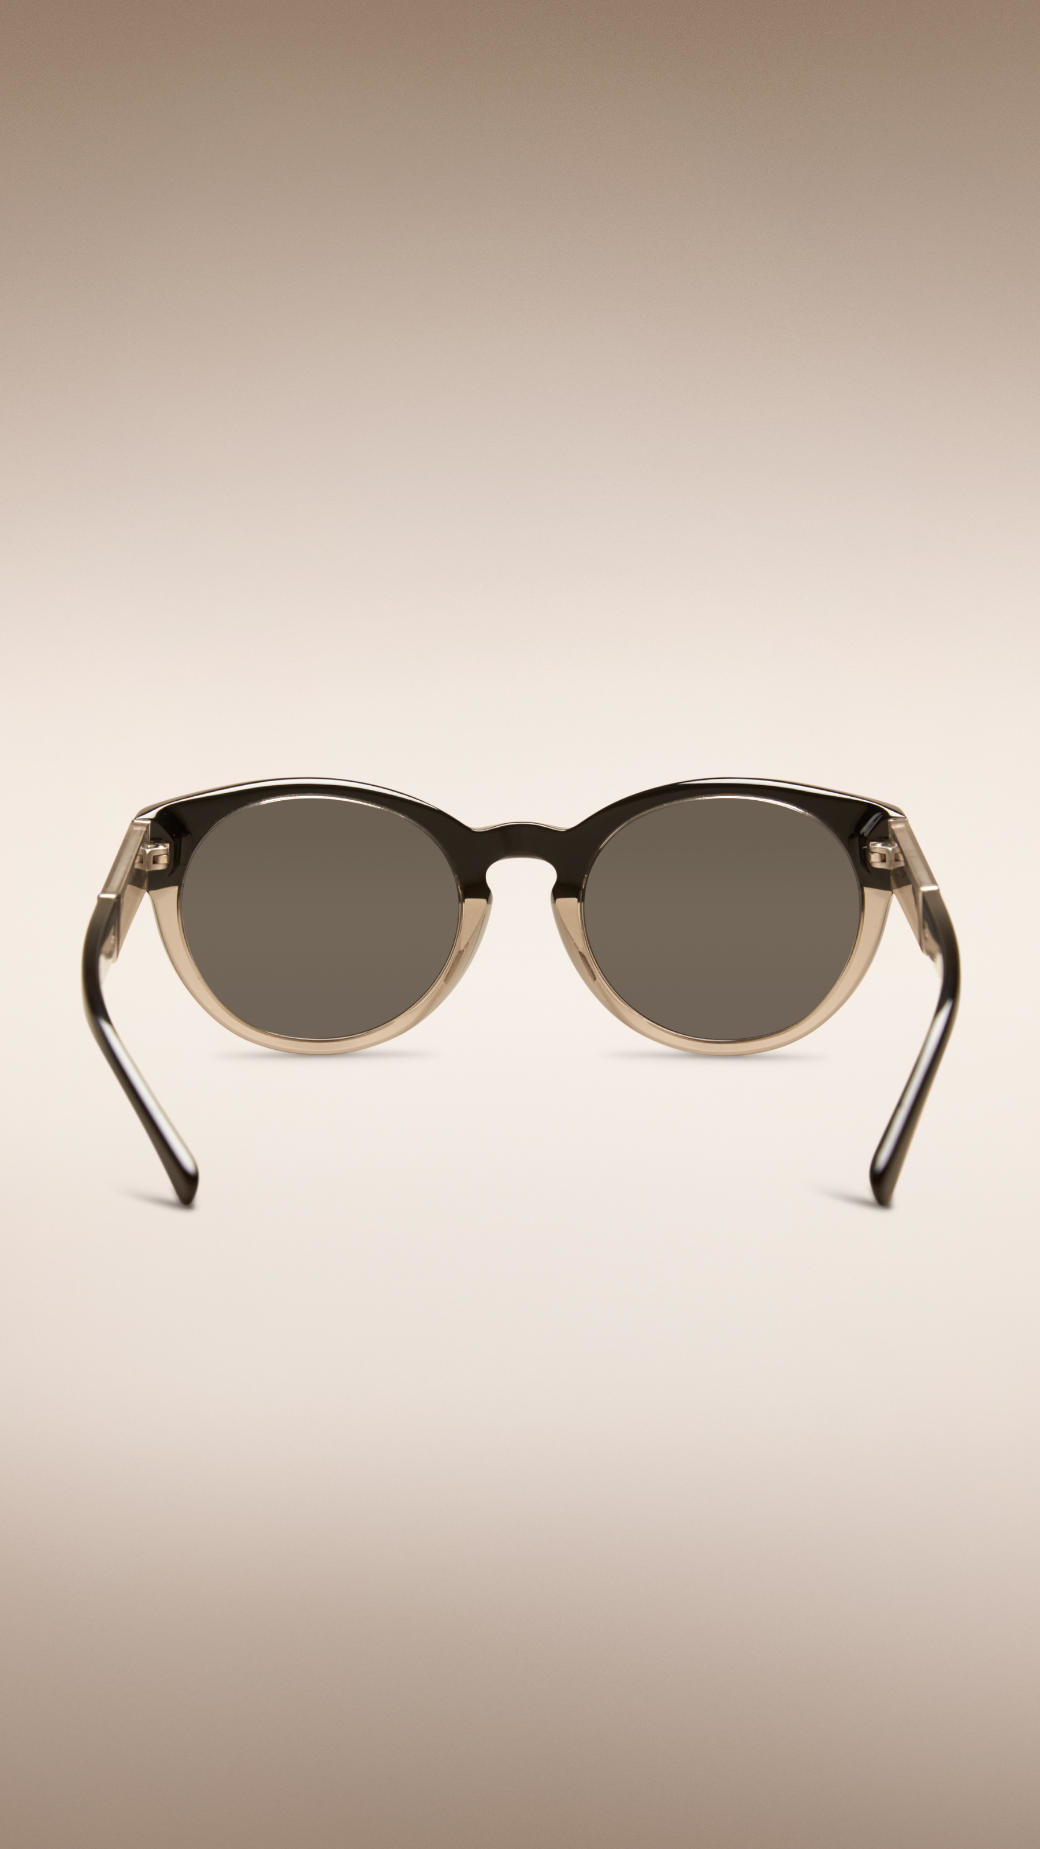 Cheap Best Wholesale Burberry round frame sunglasses Clearance Top-Rated dDxrrT